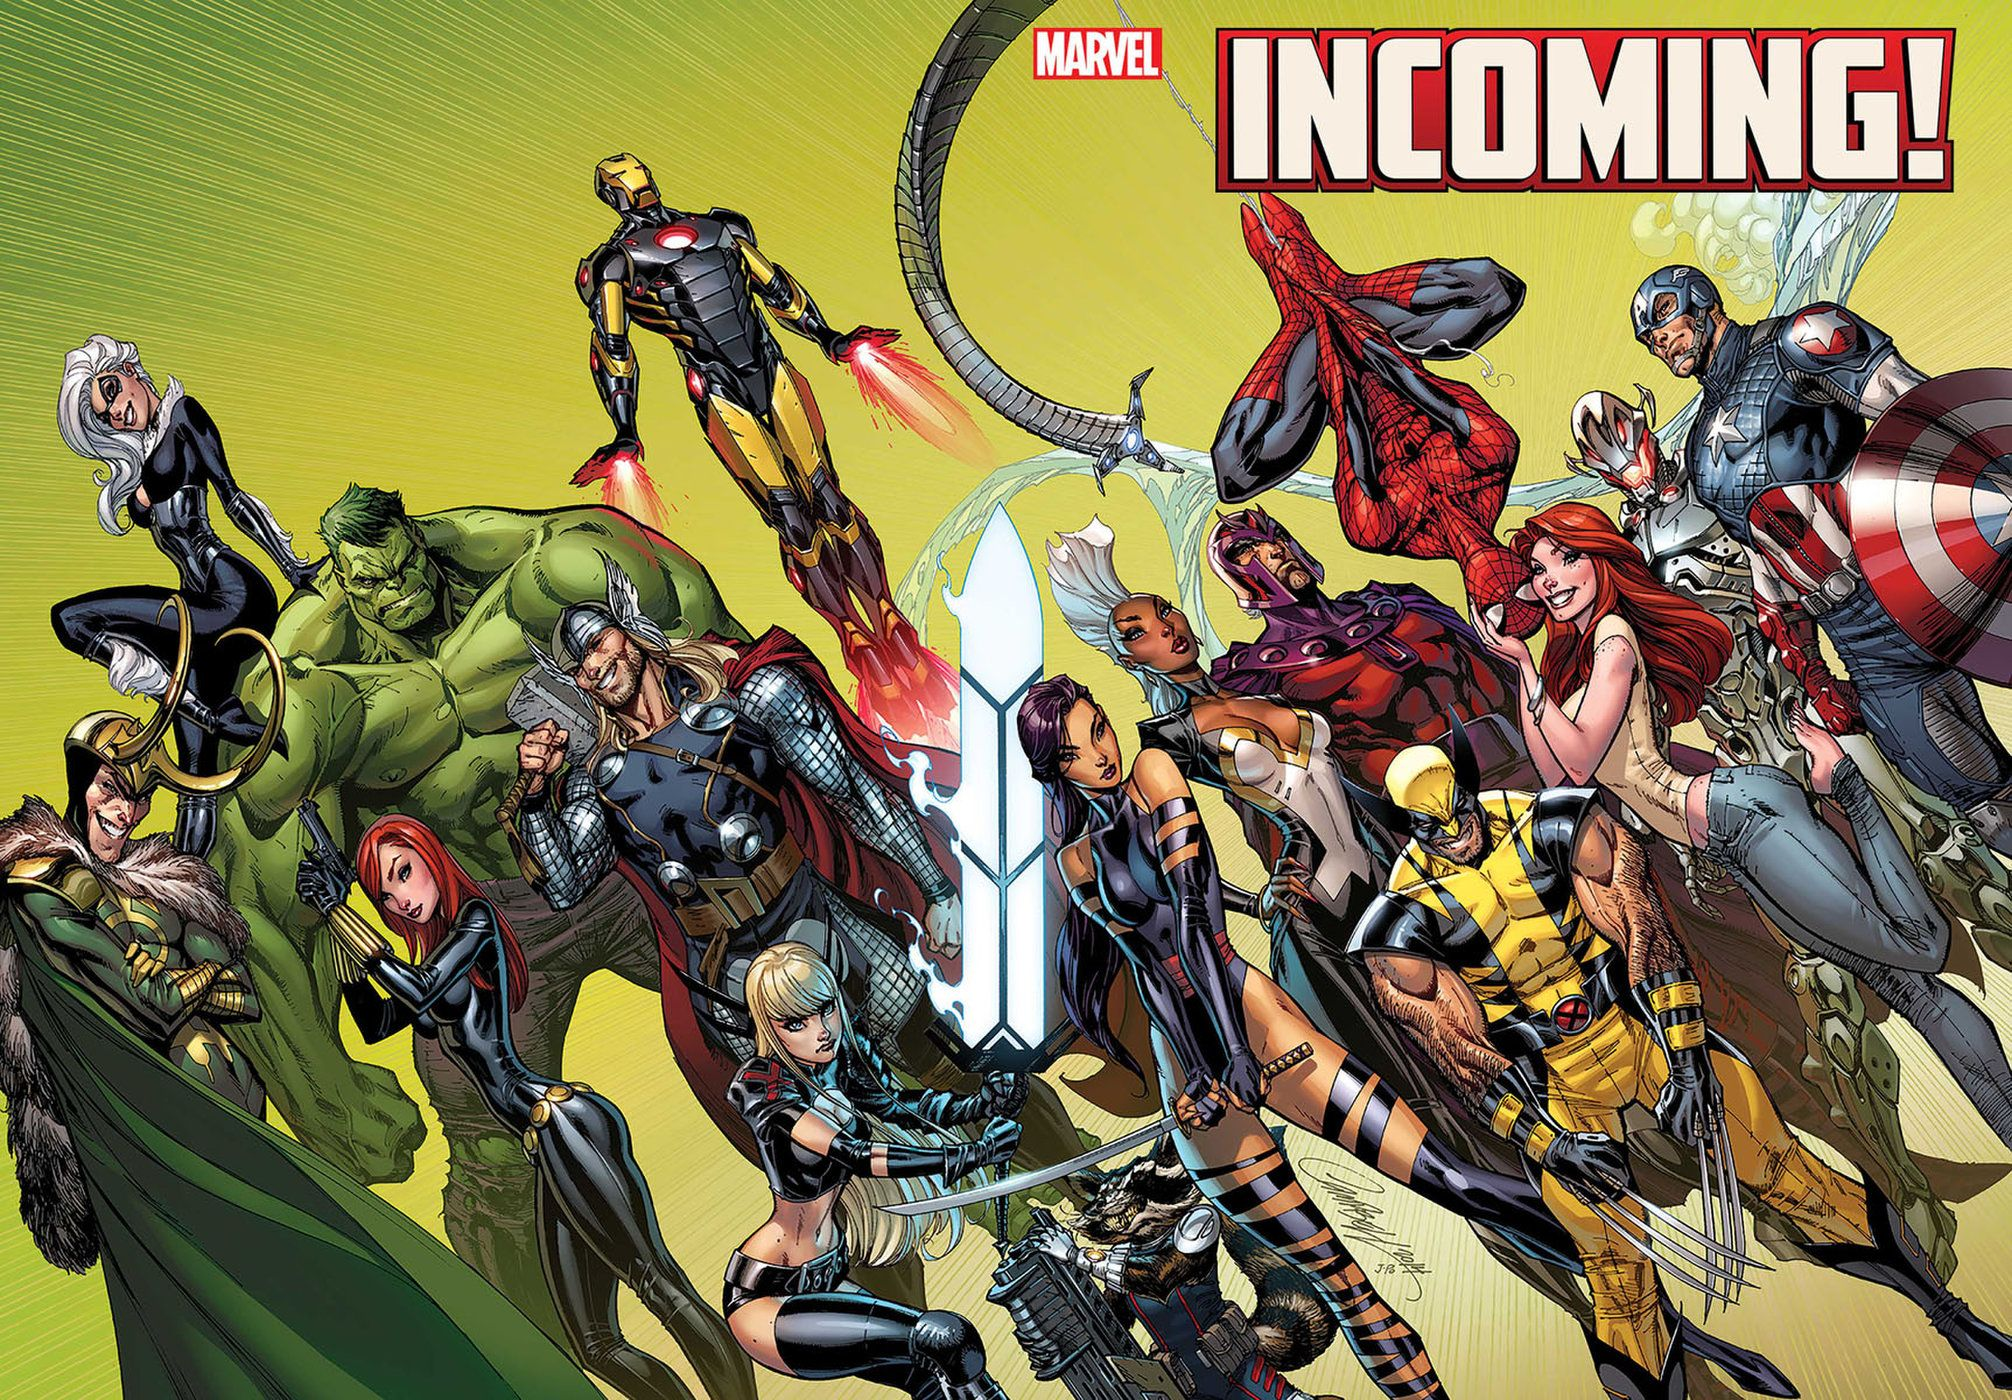 Marvel Comics. Comic Book Artwork • Incoming! by J Scott Campbell. Follow us for more awesome comic art, or check out our online store www.7a… | Arte, Cómics, Heroe